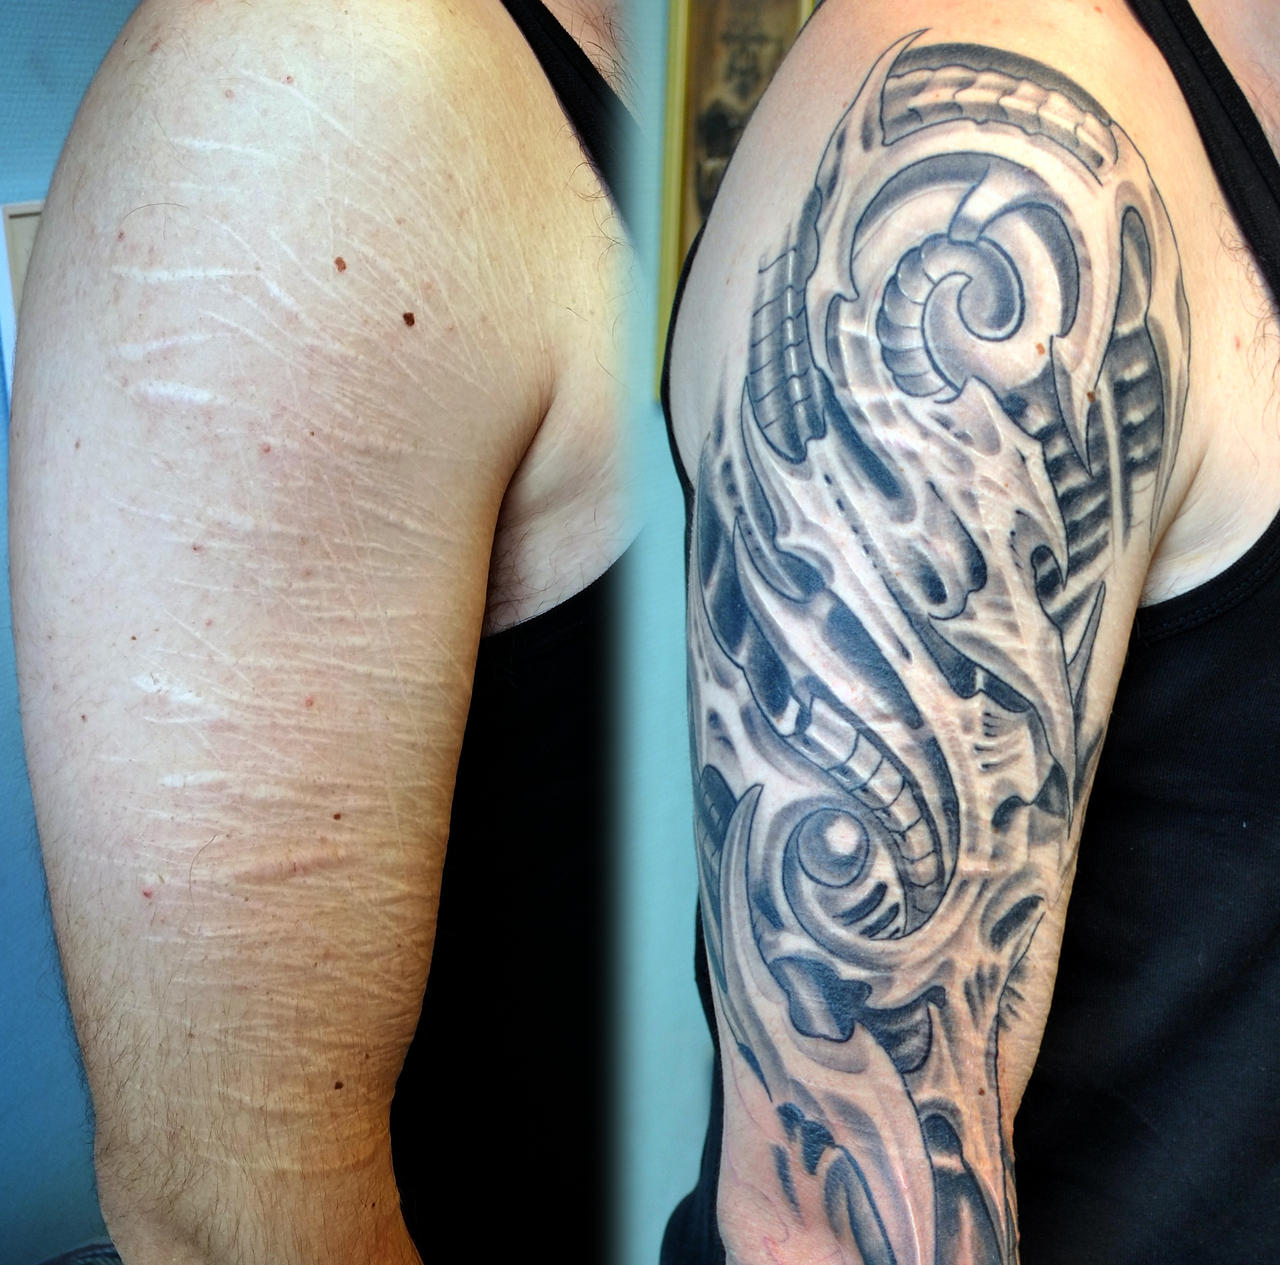 Cover scars biomech tattoo by charlie by gettattoo on for Covering scars with tattoo before and after